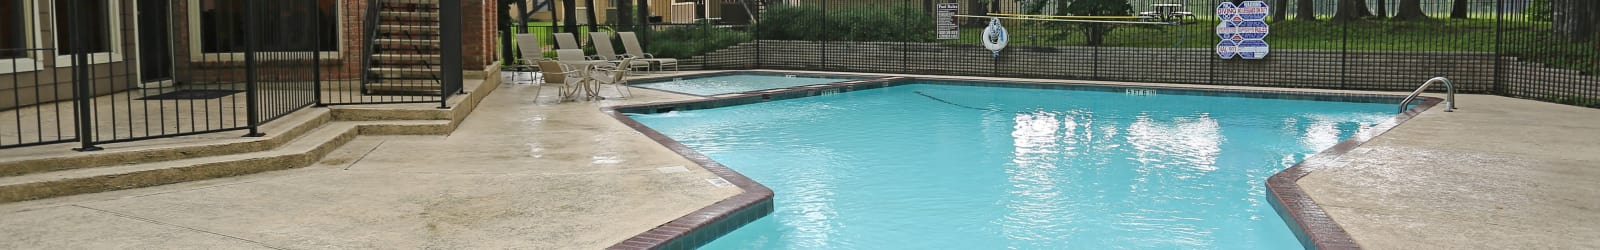 Contact us today at Bayou Parc at Oak Forest in Houston, Texas